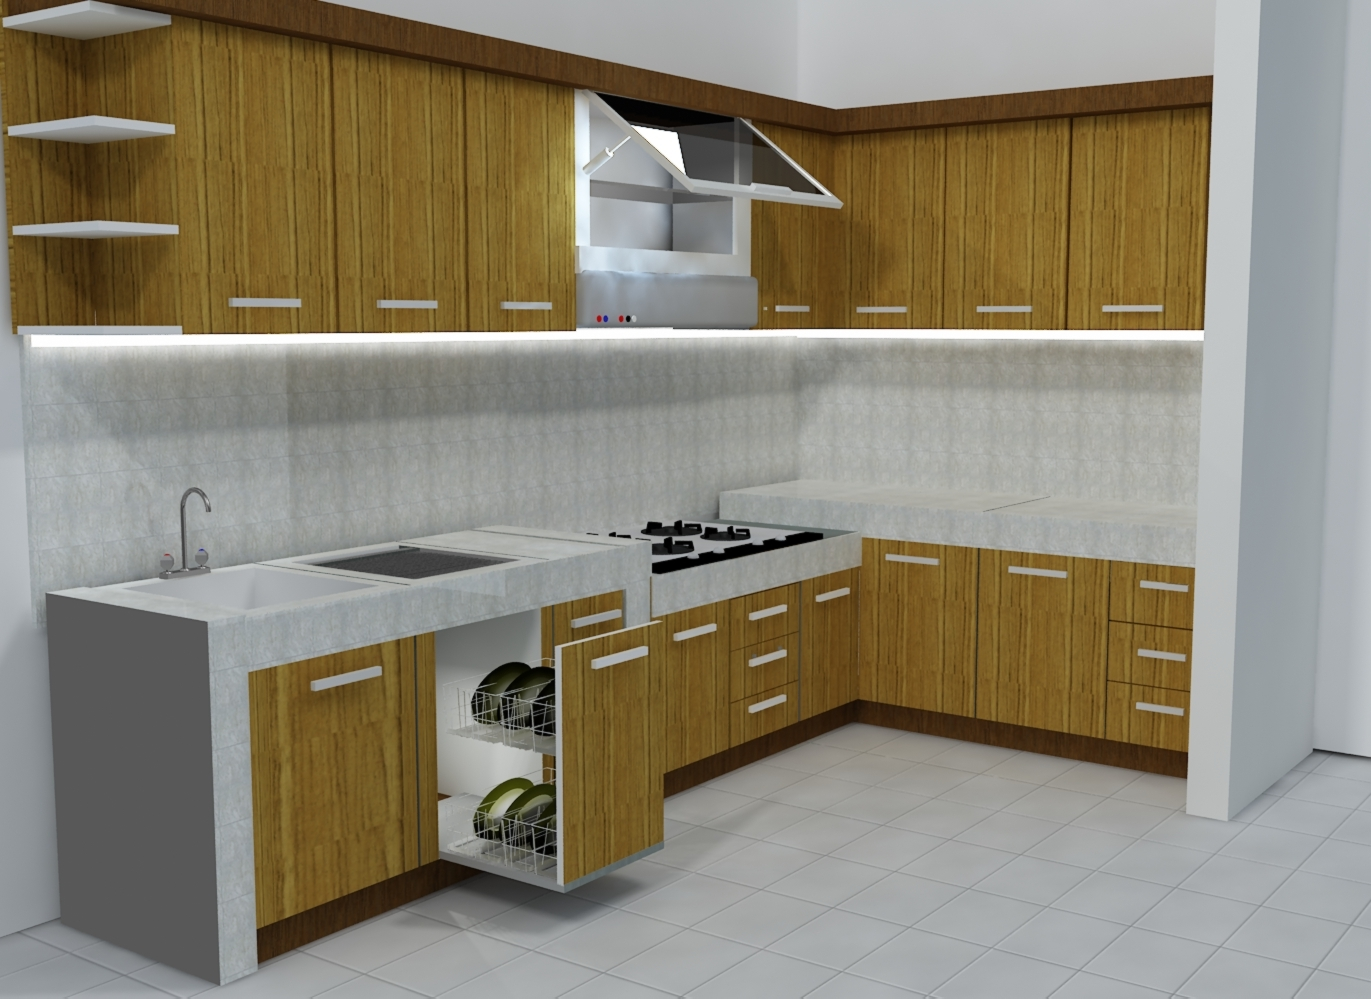 Tips to designing kitchen set kitchen set design for Design kitchen set minimalis